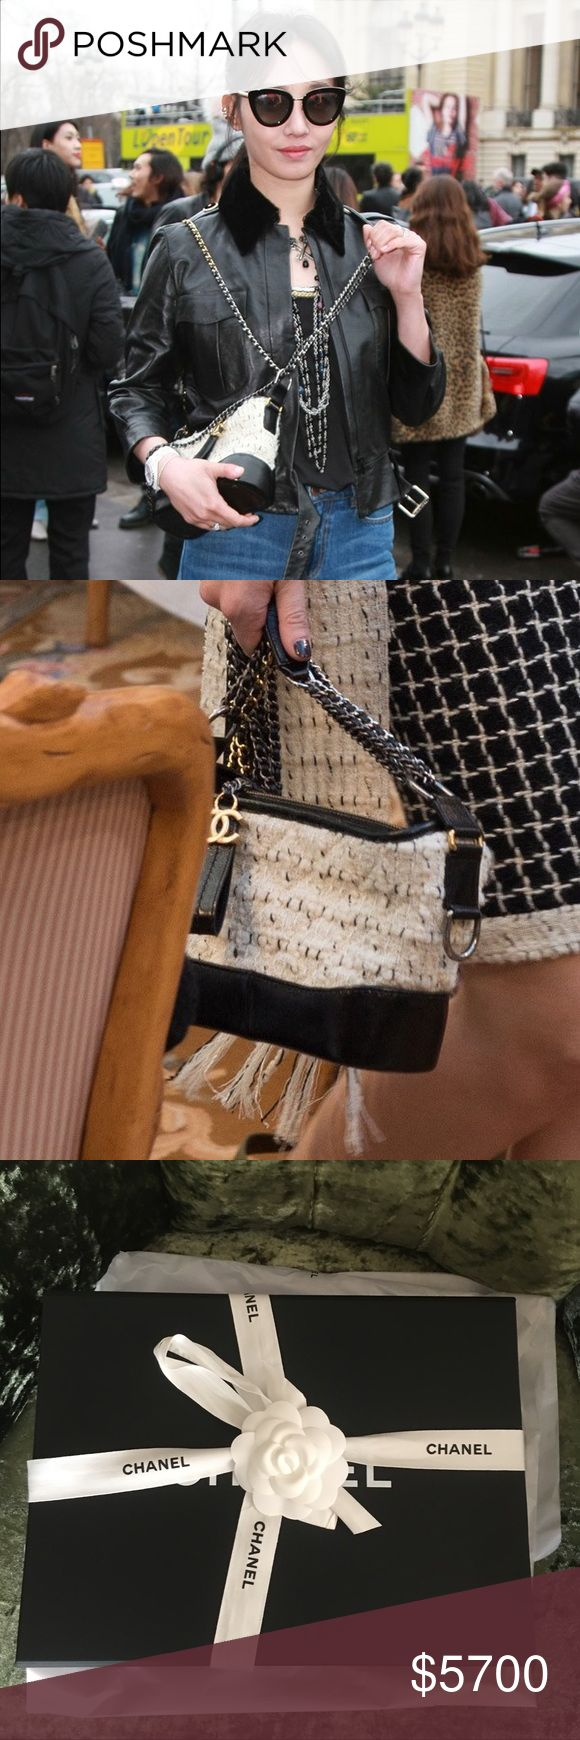 💯 Authentic limited edition RITZ CHANEL bag 💯 Authentic limited edition Chanel Gabrielle bag . Very limited edition. From the one time ritz Chanel Collection. Pre-ordered a month ago at the event. Not sold in stores. Price firm. Receipt available upon purchase. Don't miss your chance! CHANEL Bags